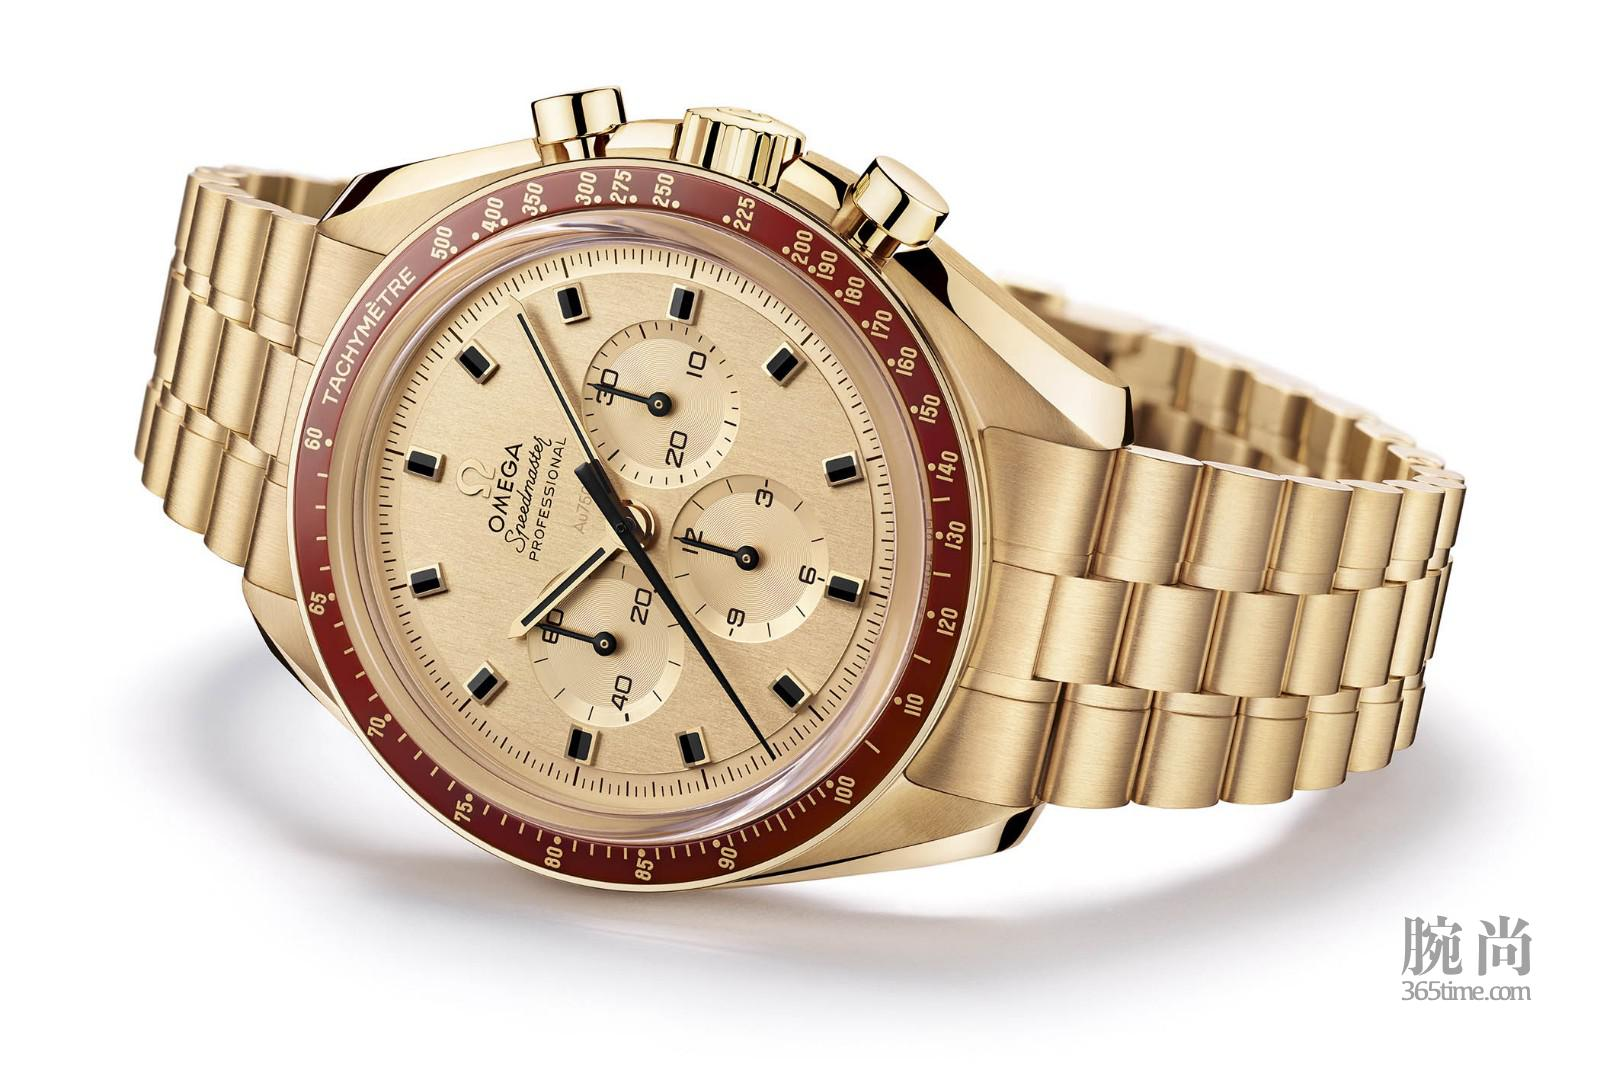 Omega-Speedmaster-Apollo-11-50th-Anniversary-Limited-Edition-310.60.42.50.99.001-2.jpg